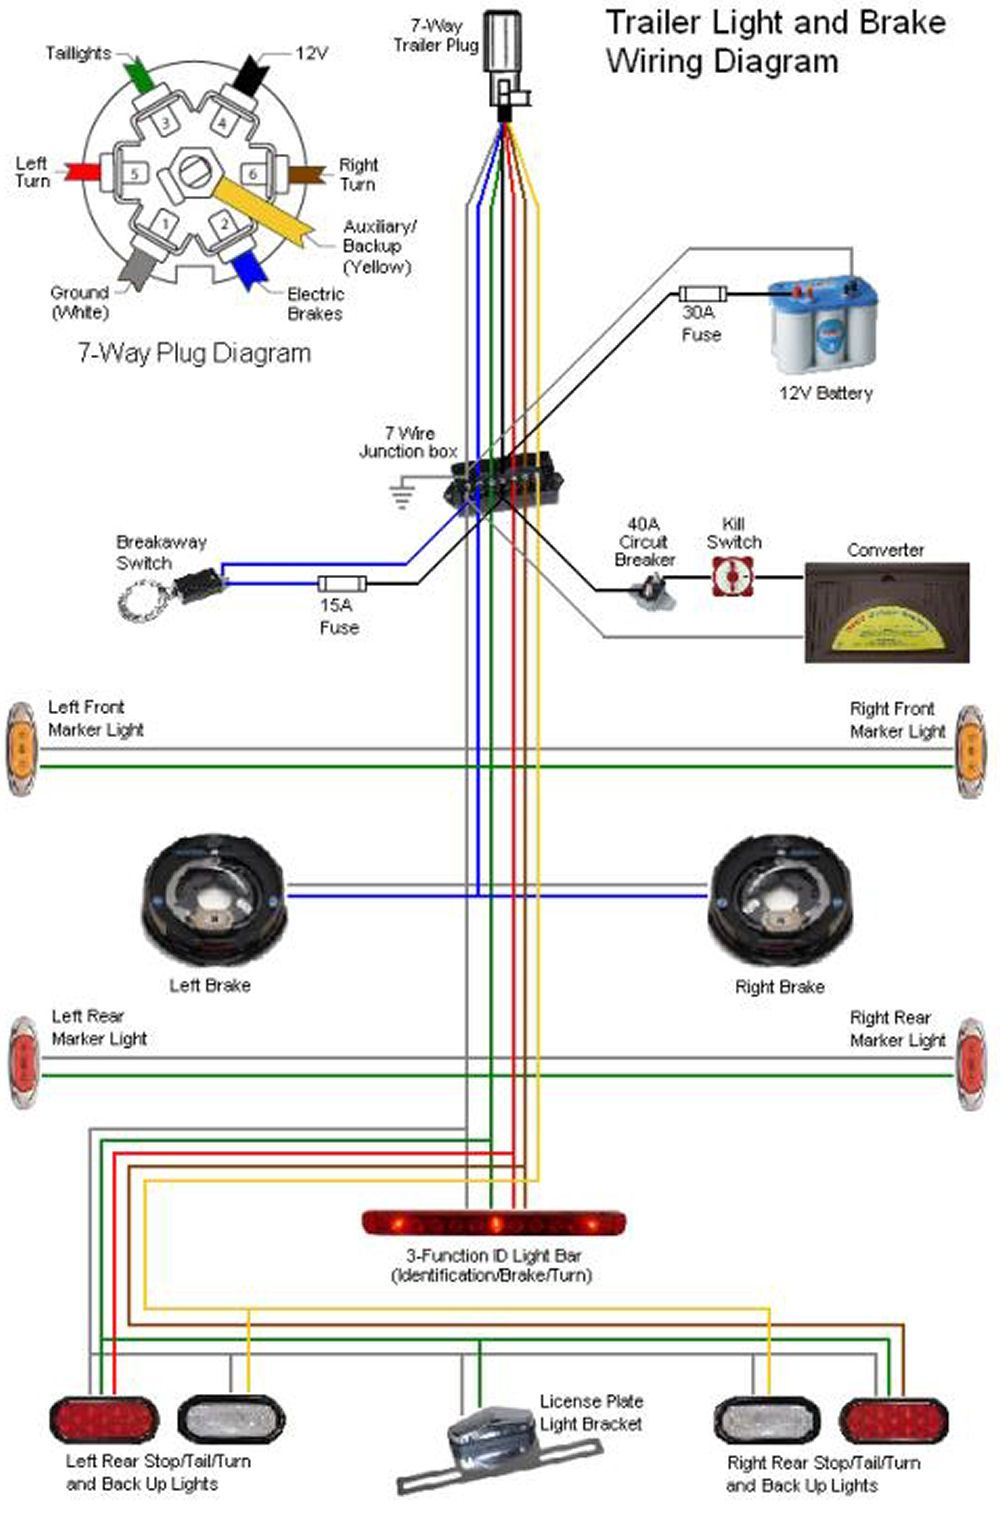 Download Free 4 Pin Trailer Wiring Diagram Top 10 Instruction How To - Trailer Plug Wiring Diagram 7 Way